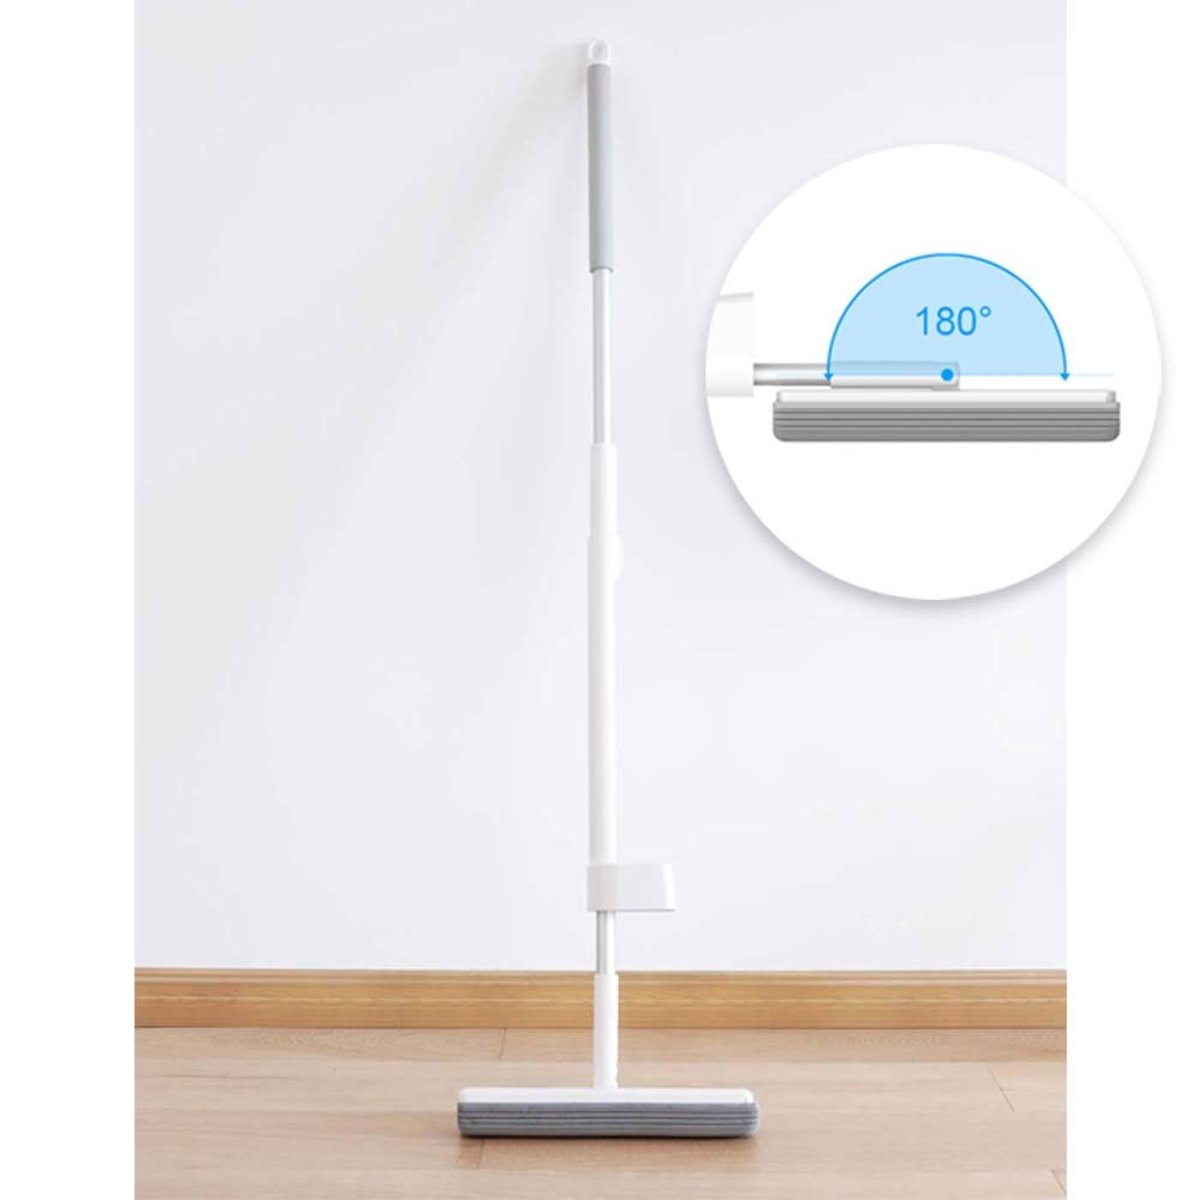 180° Rotating Standing Storage collodion Mop